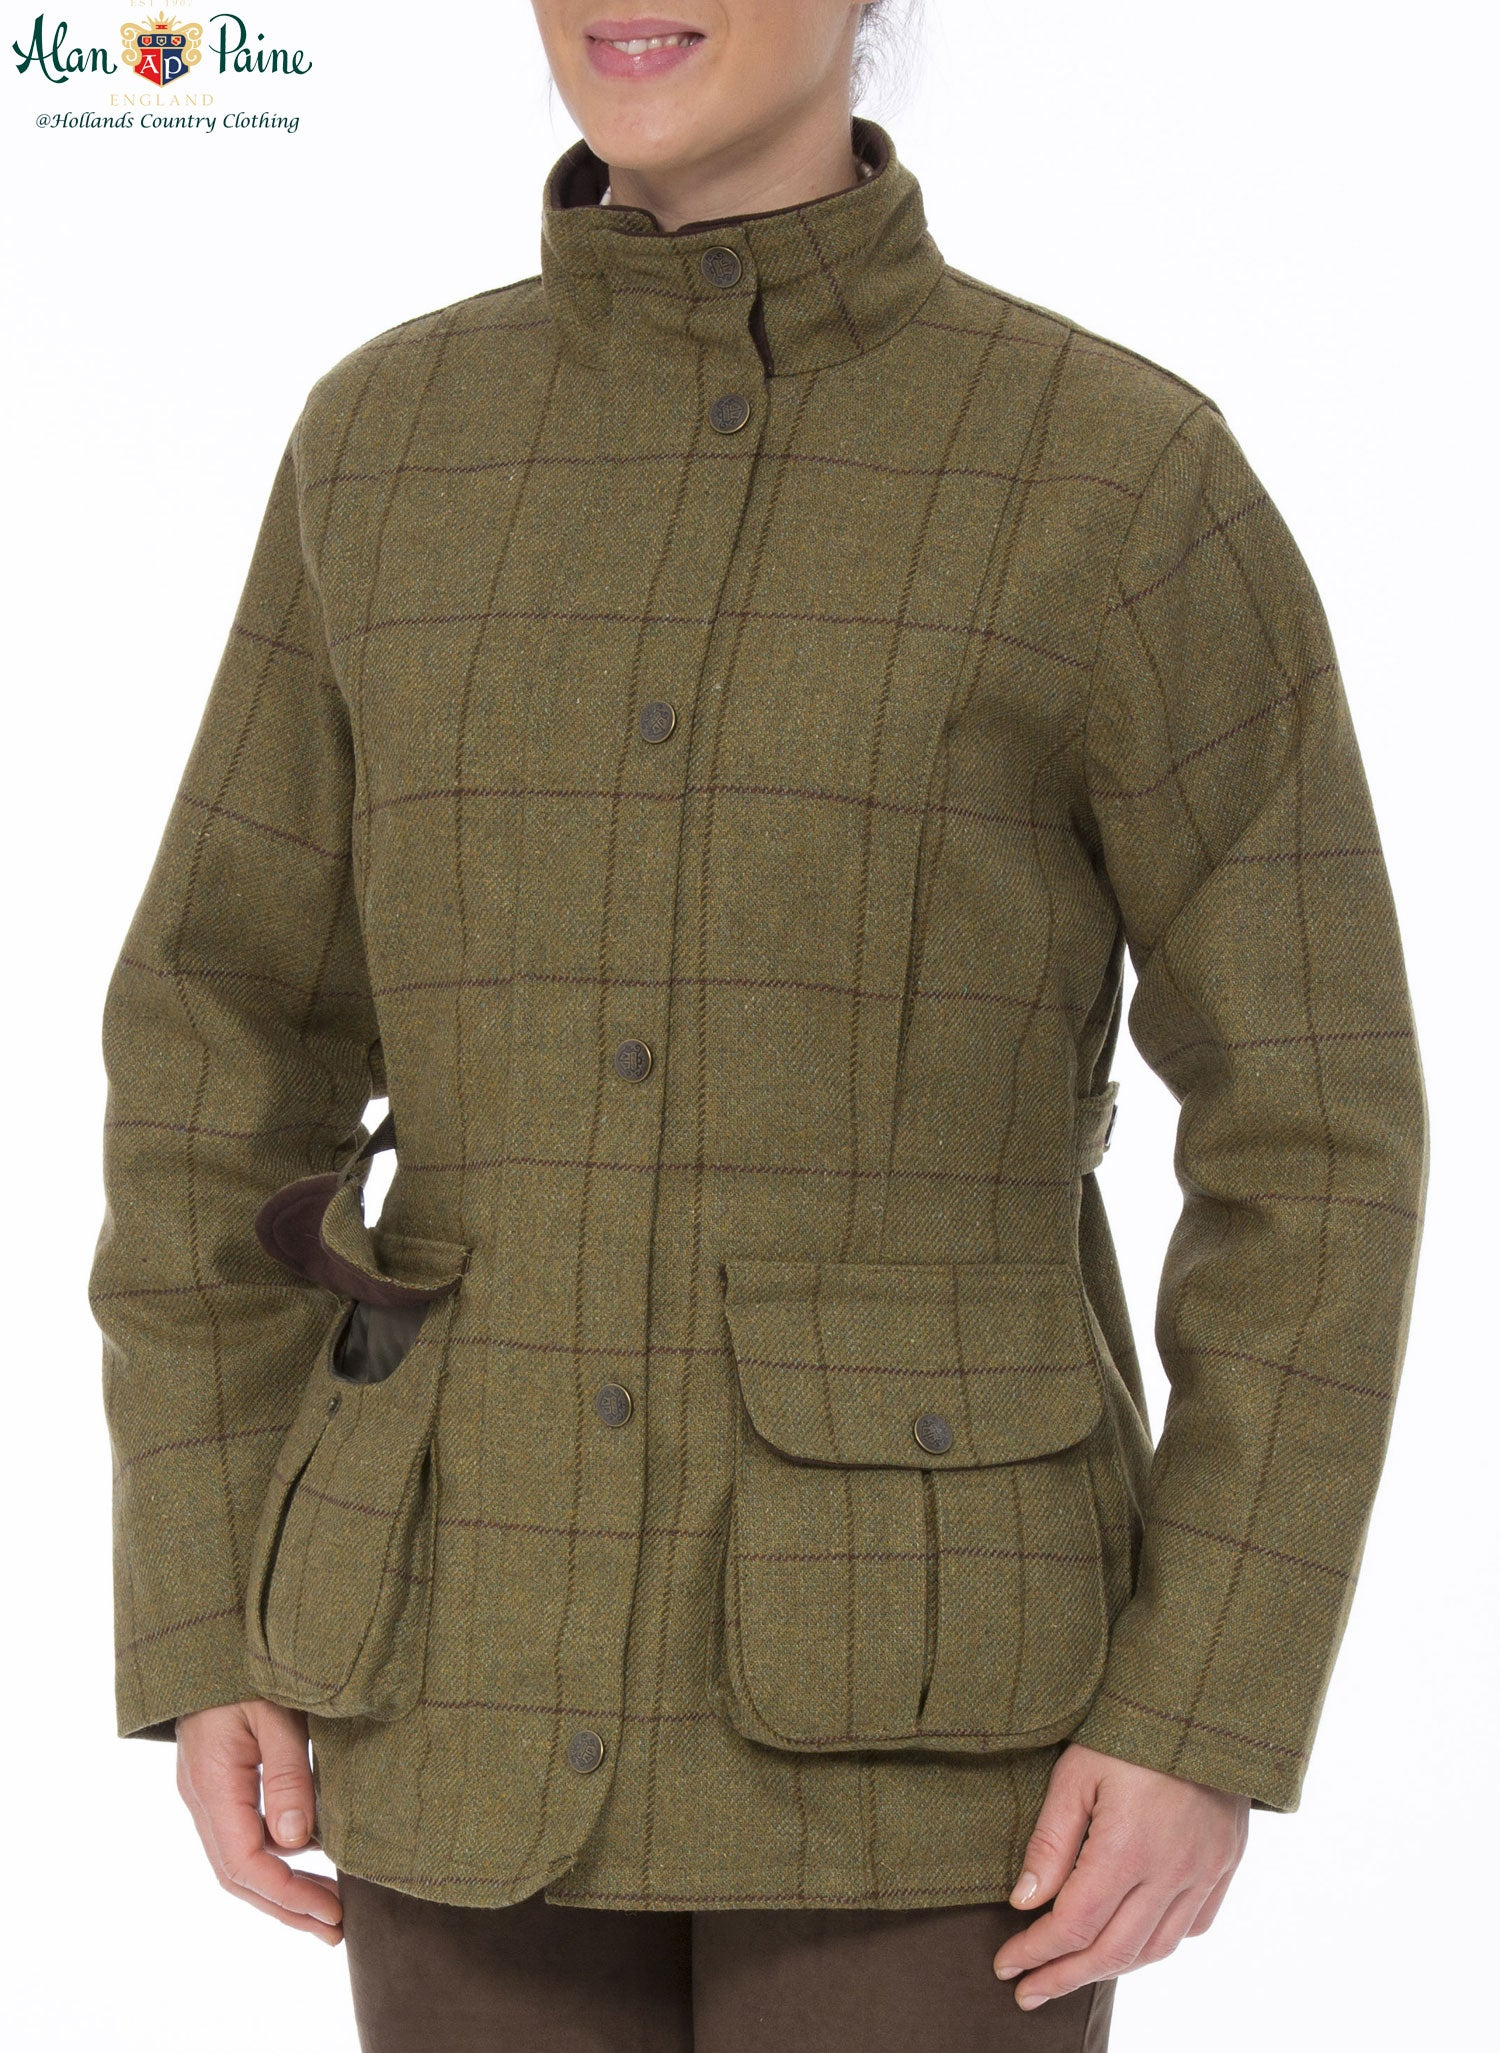 lady wearing Alan Paine Rutland Ladies Waterproof Tweed